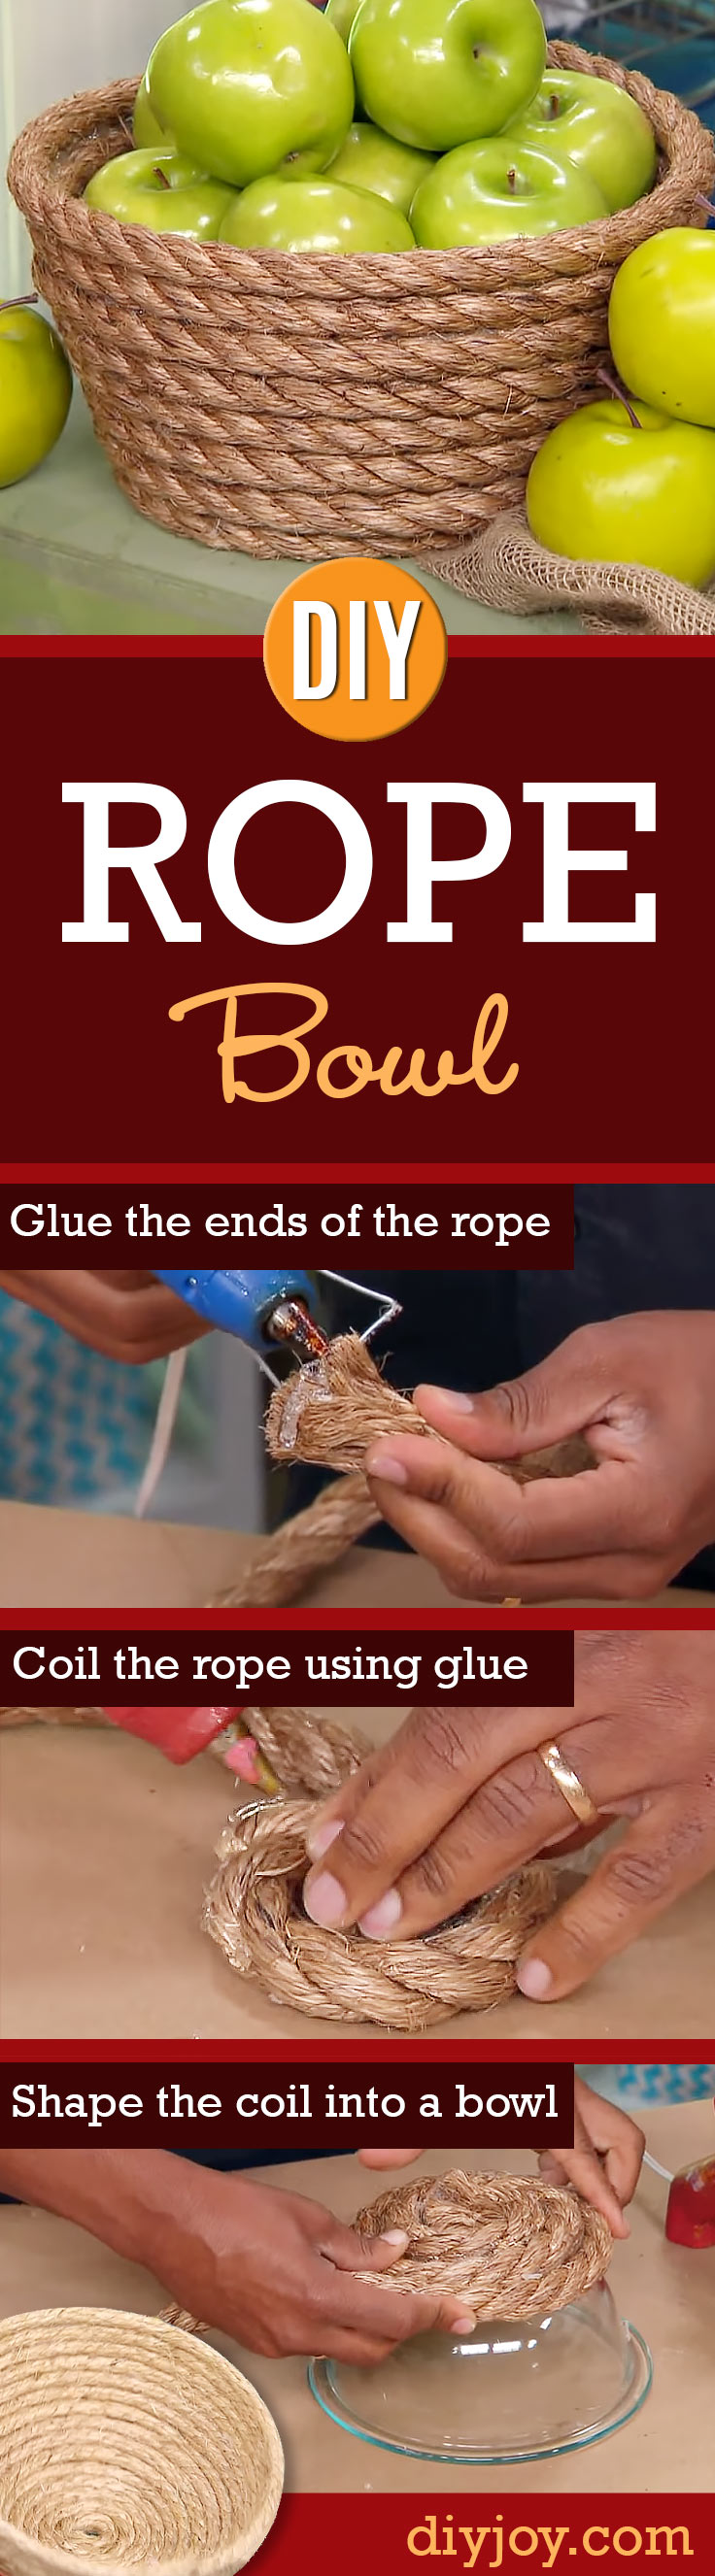 DIY Storage Ideas - DIY Rope Bowls - Home Decor and Organizing Projects for The Bedroom, Bathroom, Living Room, Panty and Storage Projects - Tutorials and Step by Step Instructions for Do It Yourself Organization #diy